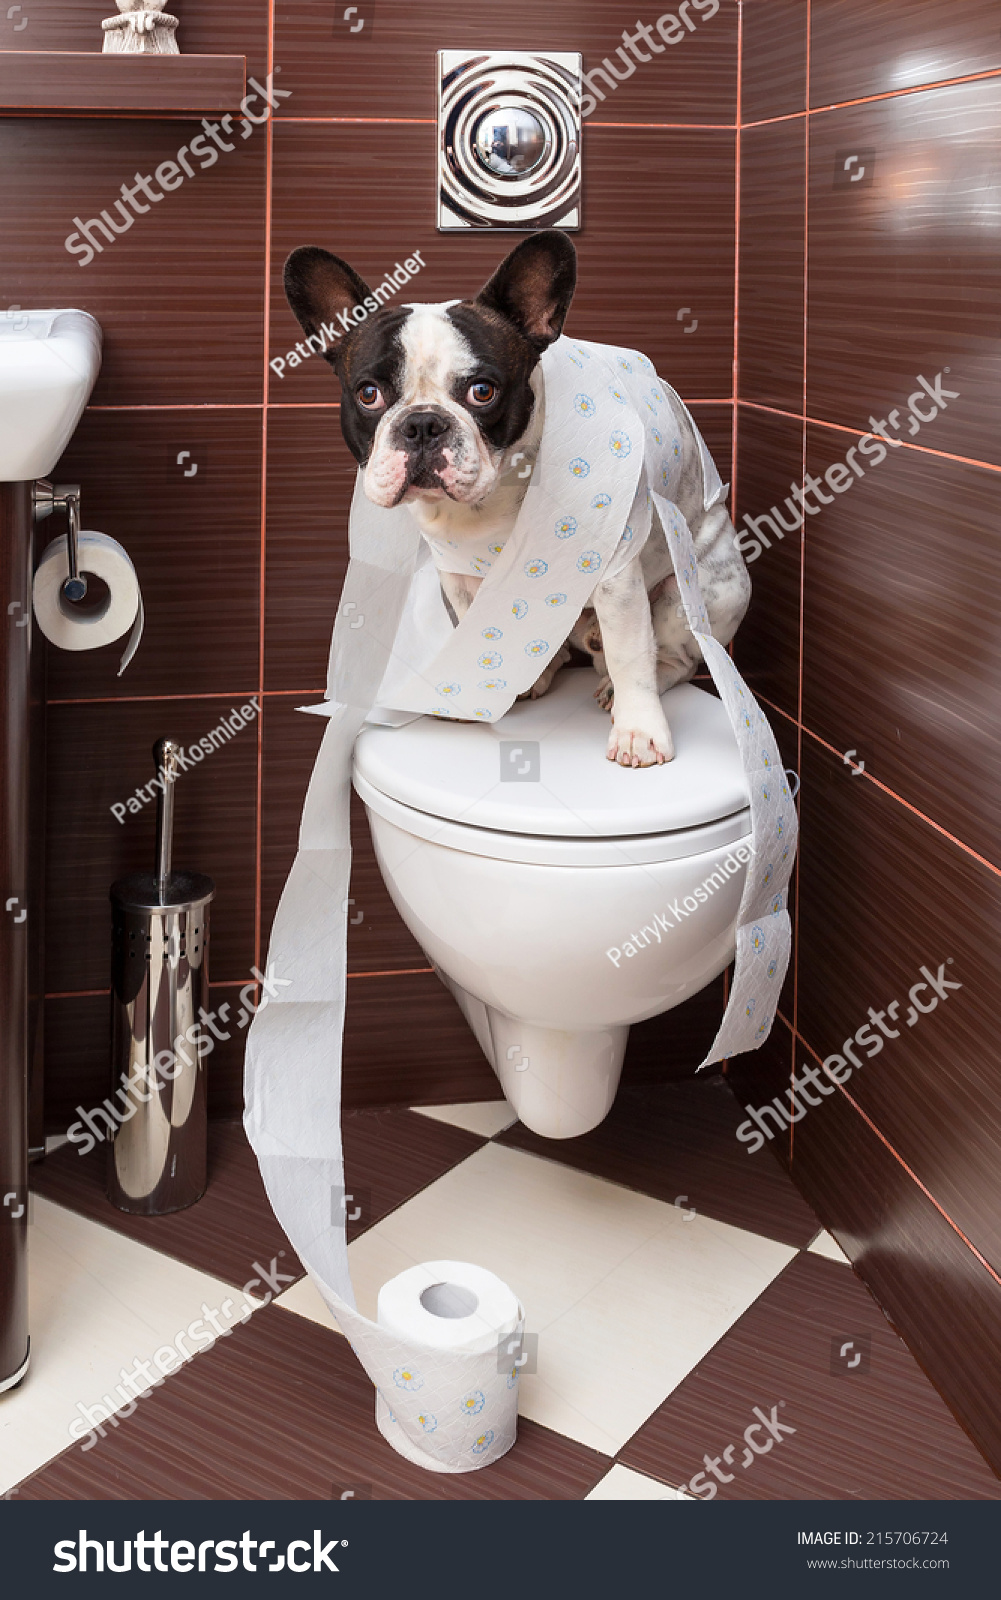 french bulldog home french bulldog sitting on toilet home stock photo 215706724